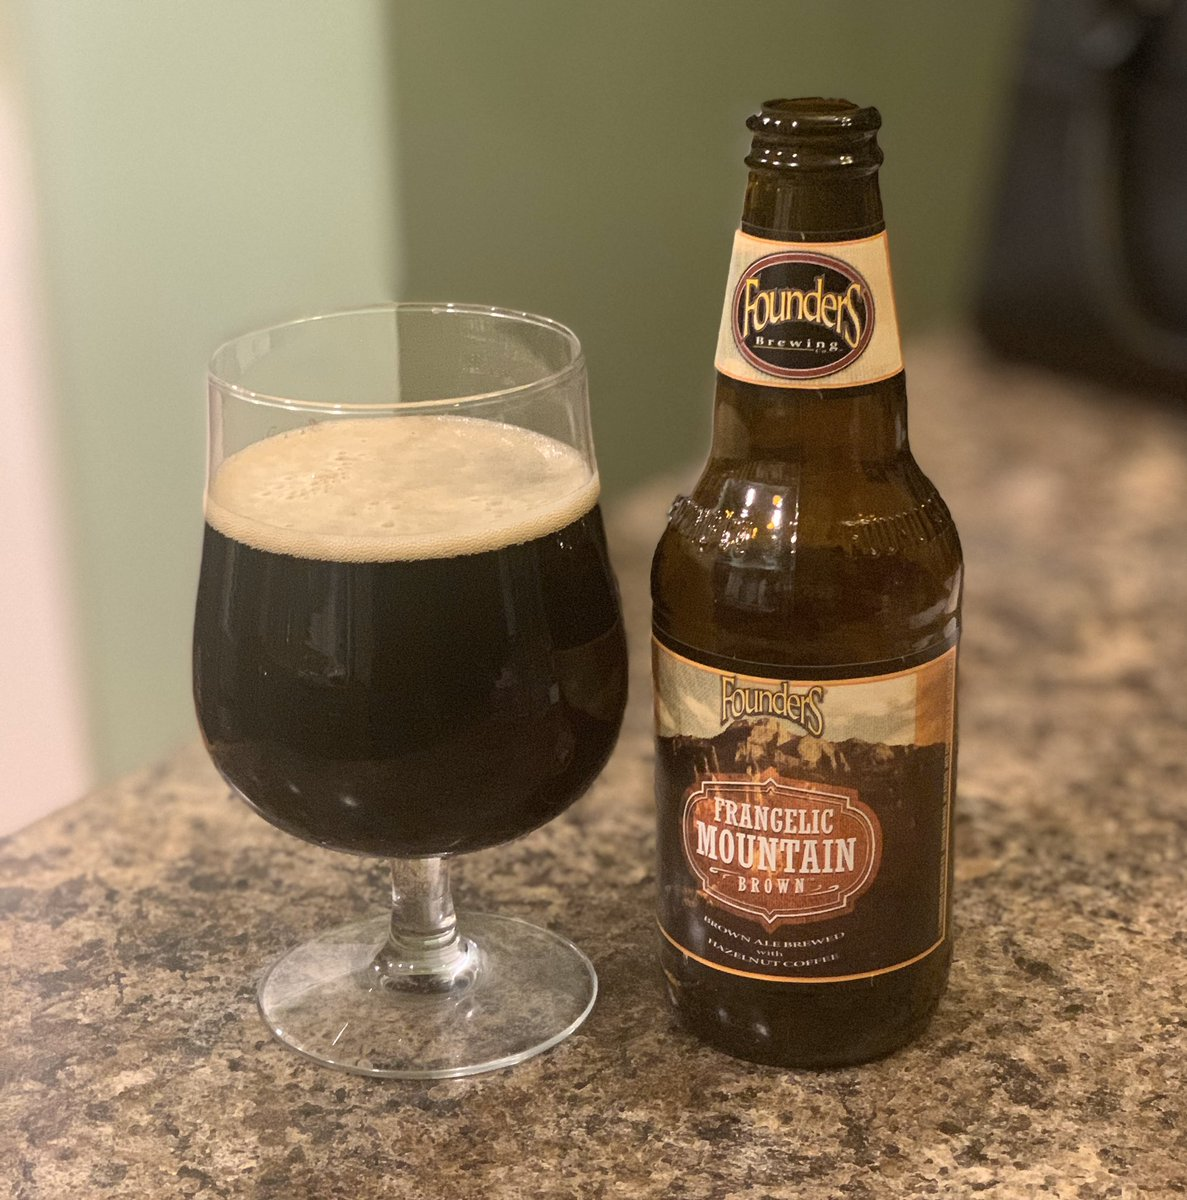 Another fantastic beer from @foundersbrewing   They are hitting some grand slams. 🤤 https://t.co/m1avNNlnWk